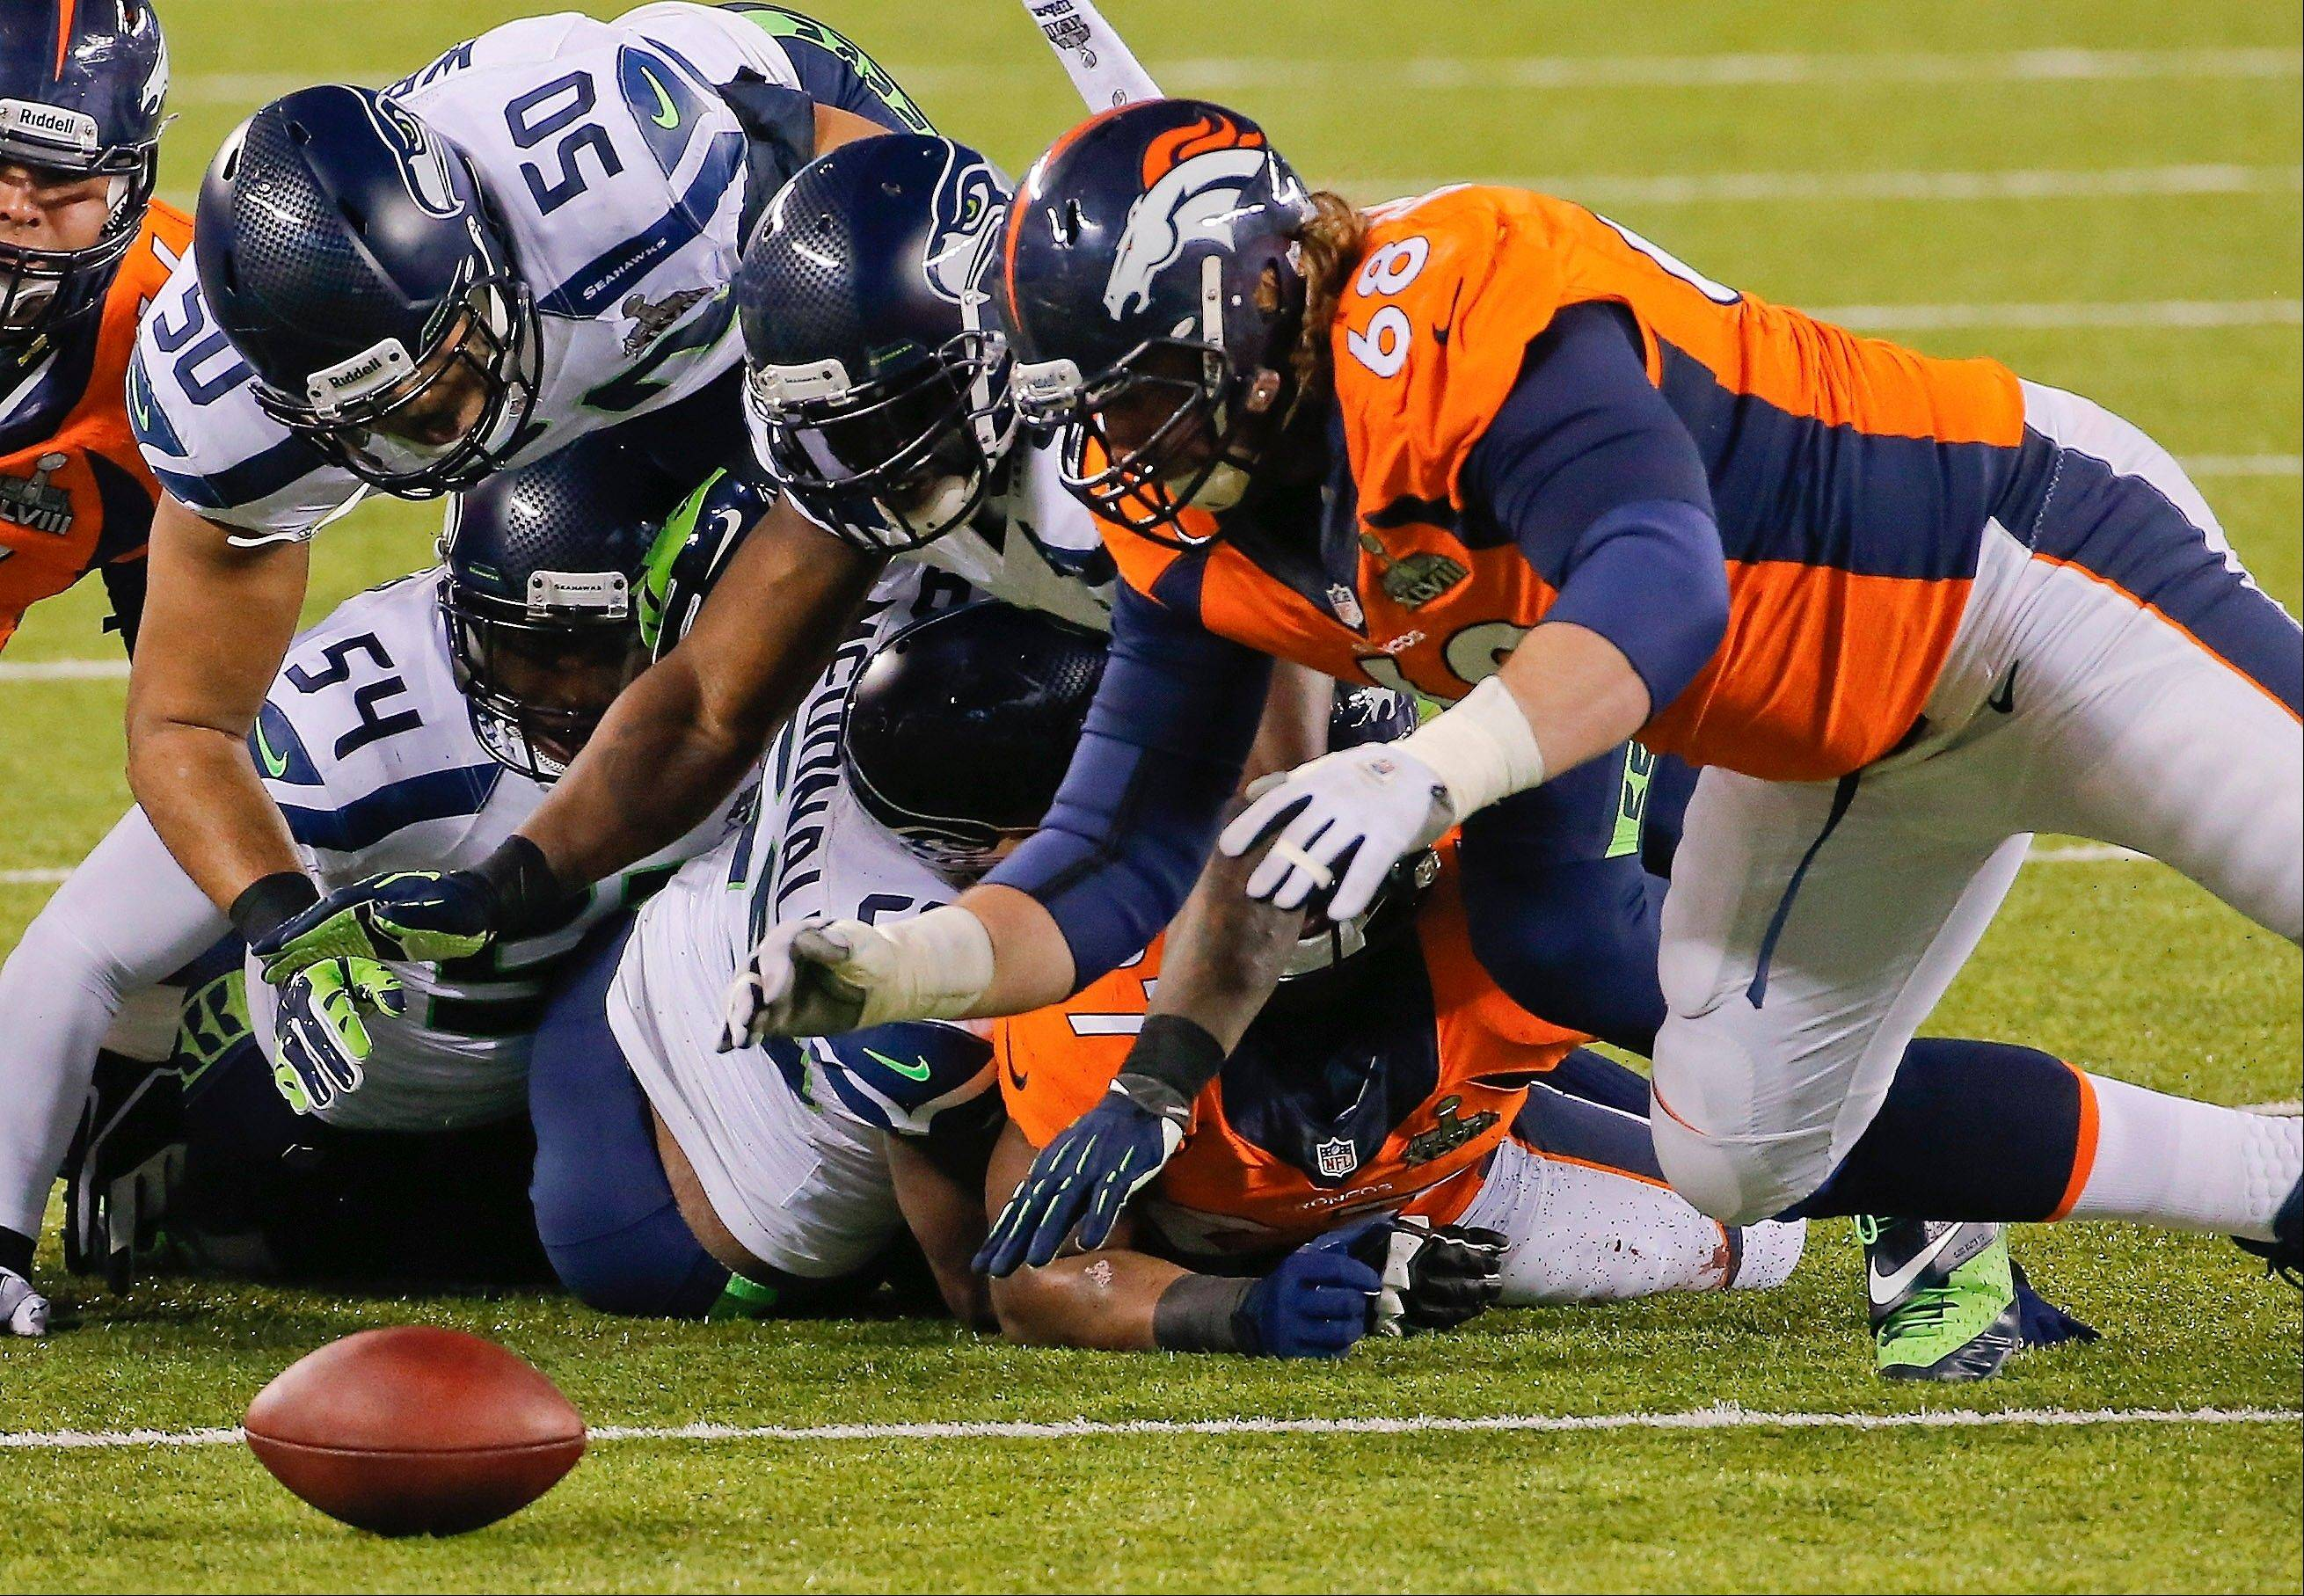 Seattle Seahawks' K.J. Wright (50), Chris Clemons (91) and Denver Broncos' Zane Beadles (68) dive after a fumble by the Broncos' Knowshon Moreno during the first half. Beadles recovered the ball on the play.